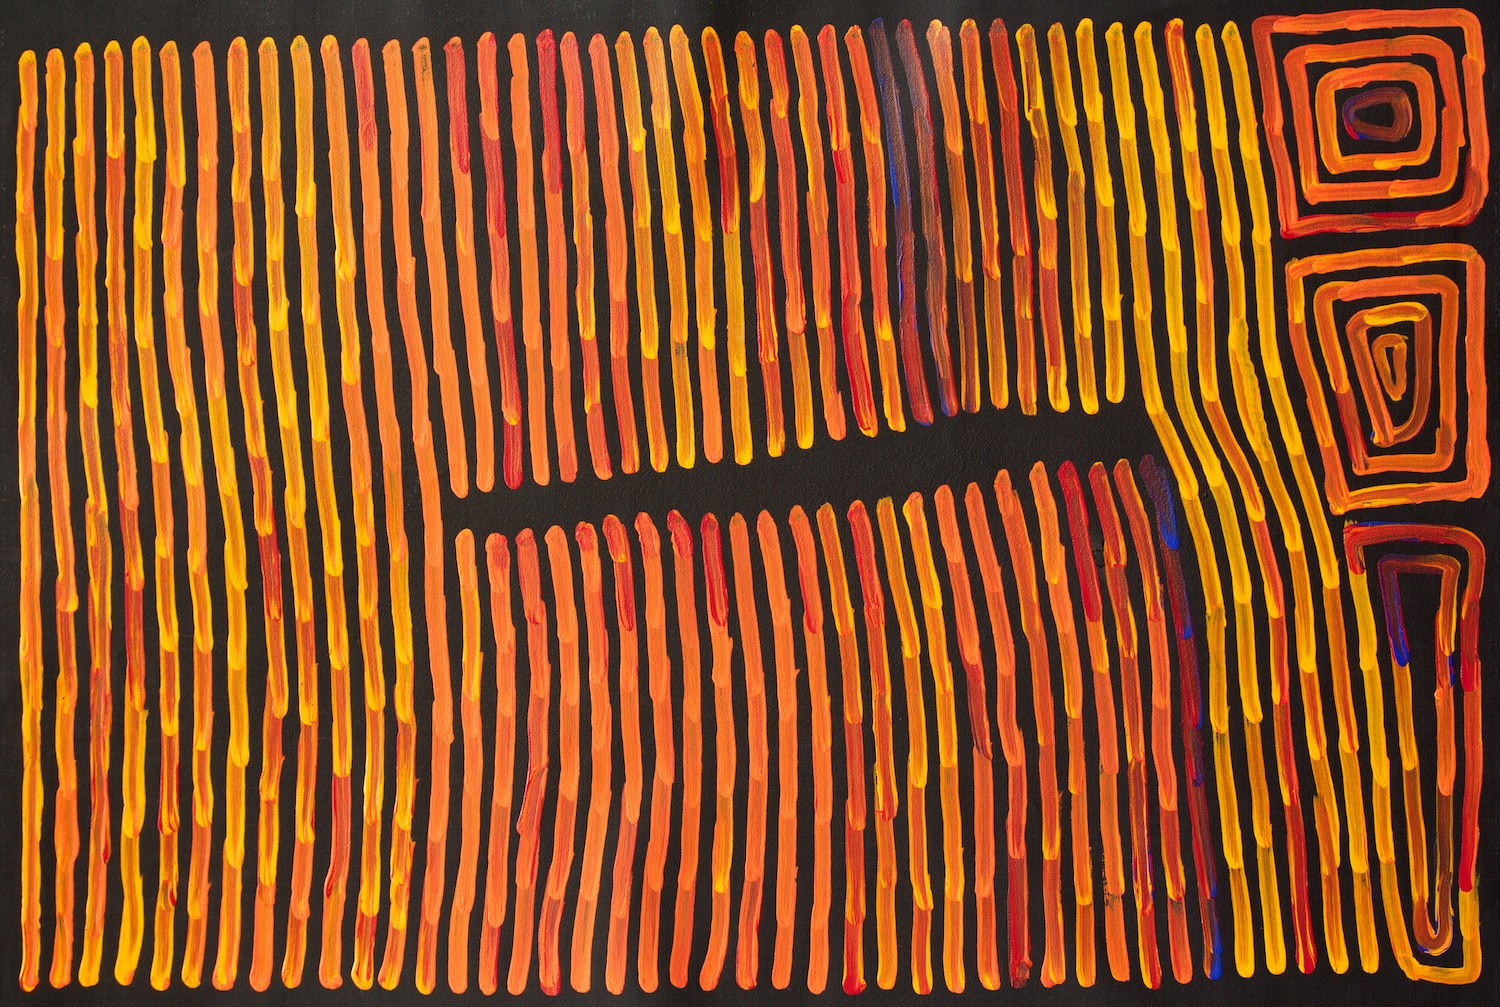 Ronnie Tjampitjinpa 'Fire and Tingari' 90cm x 60cm Acrylic on Linen (2015)